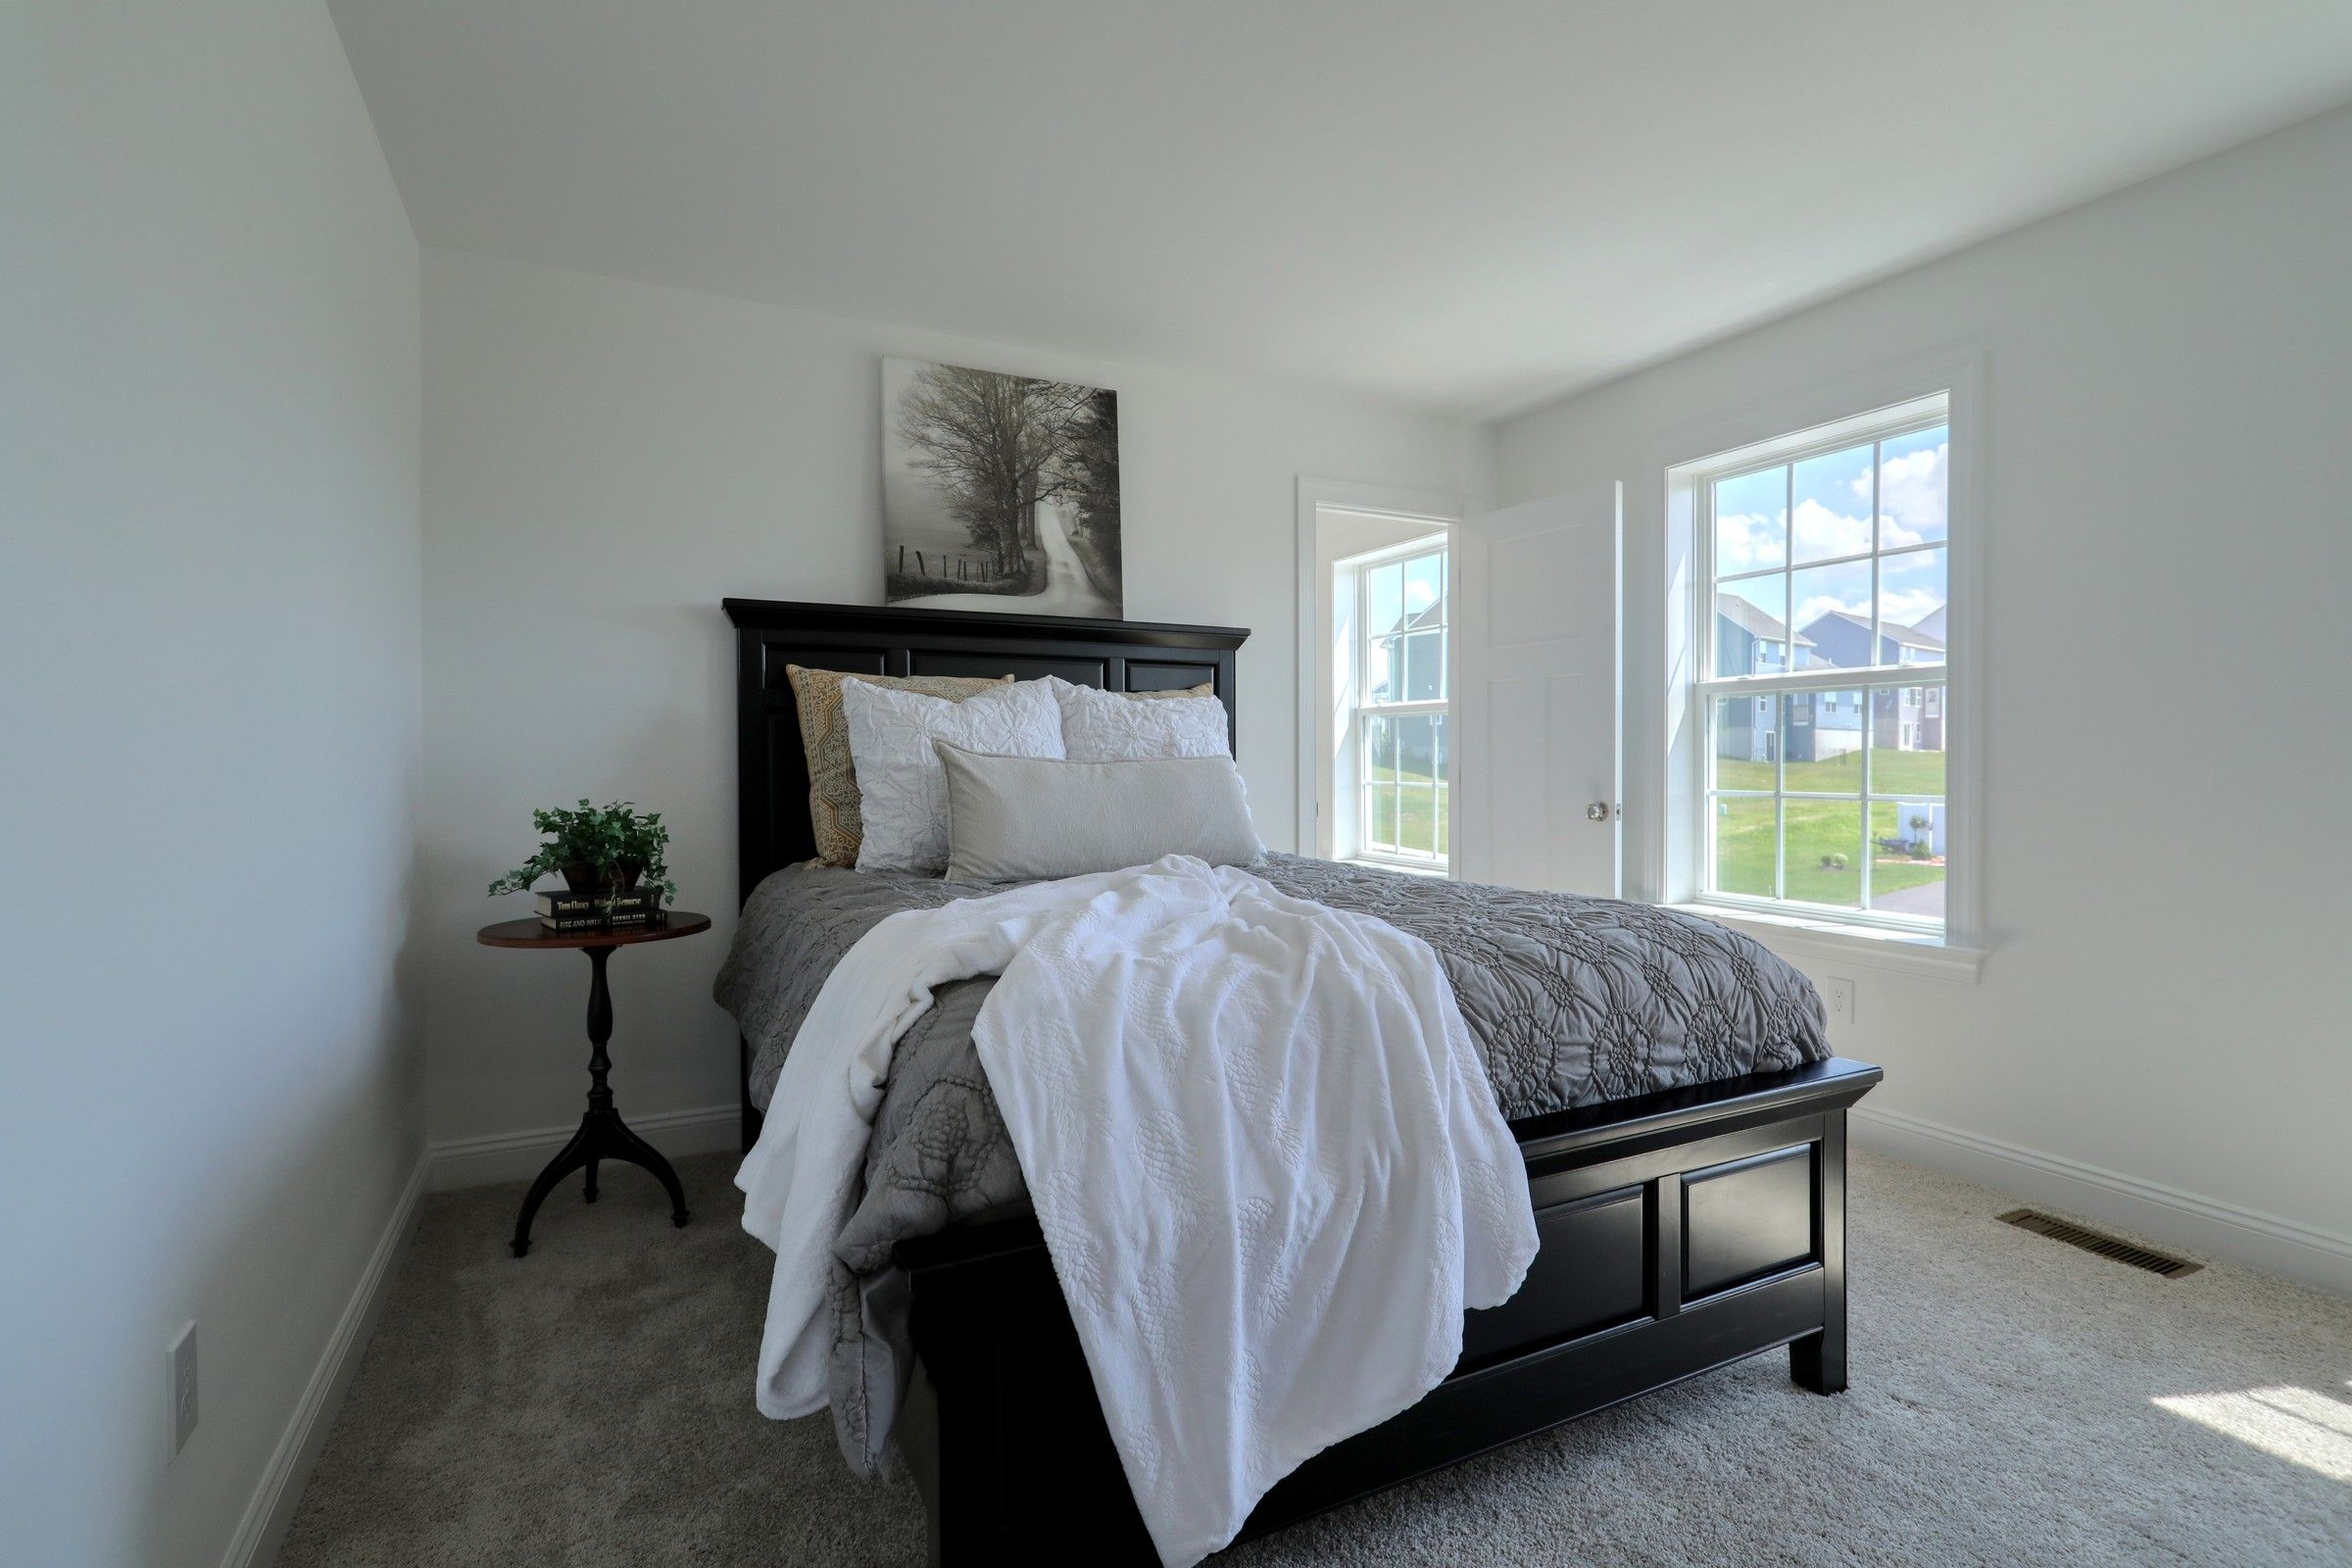 Bedroom featured in the Lachlan Vintage By Keystone Custom Homes in York, PA